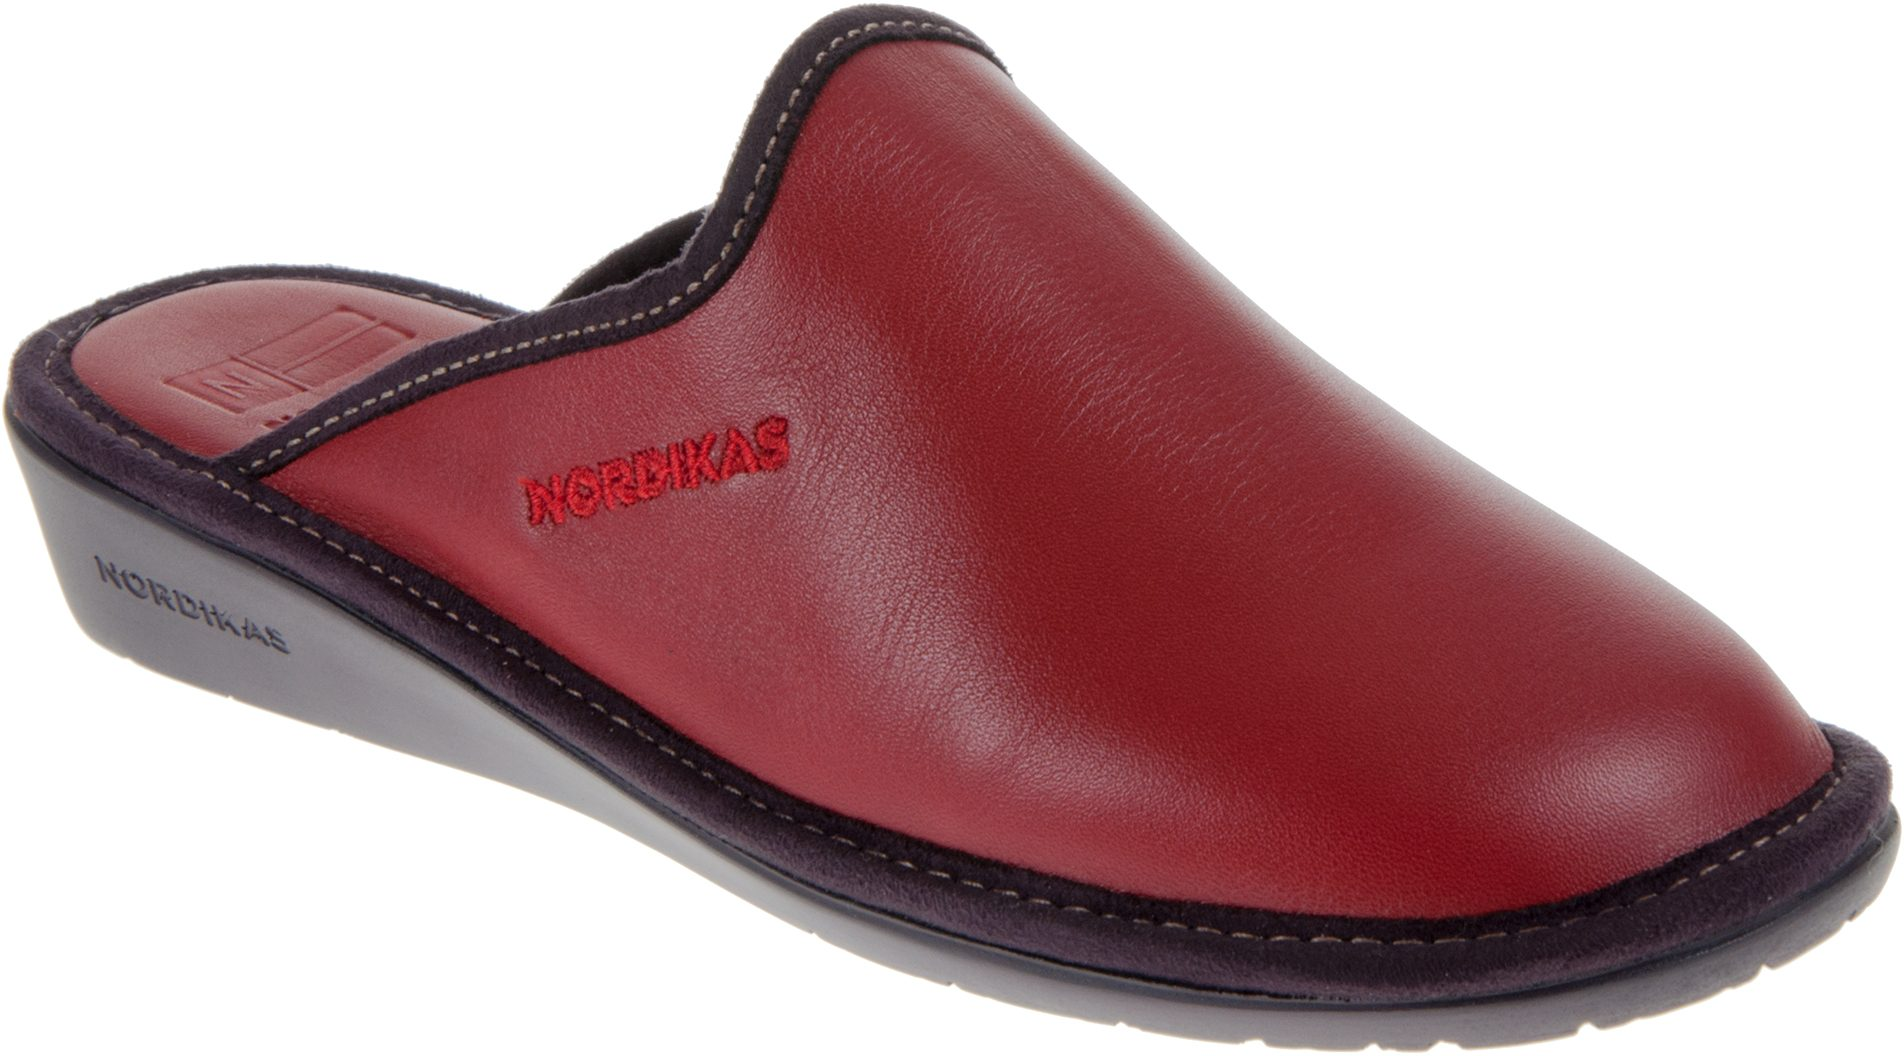 958d731db6ea0 Nordikas 347 Red 347/8 - Mule Slippers - Humphries Shoes